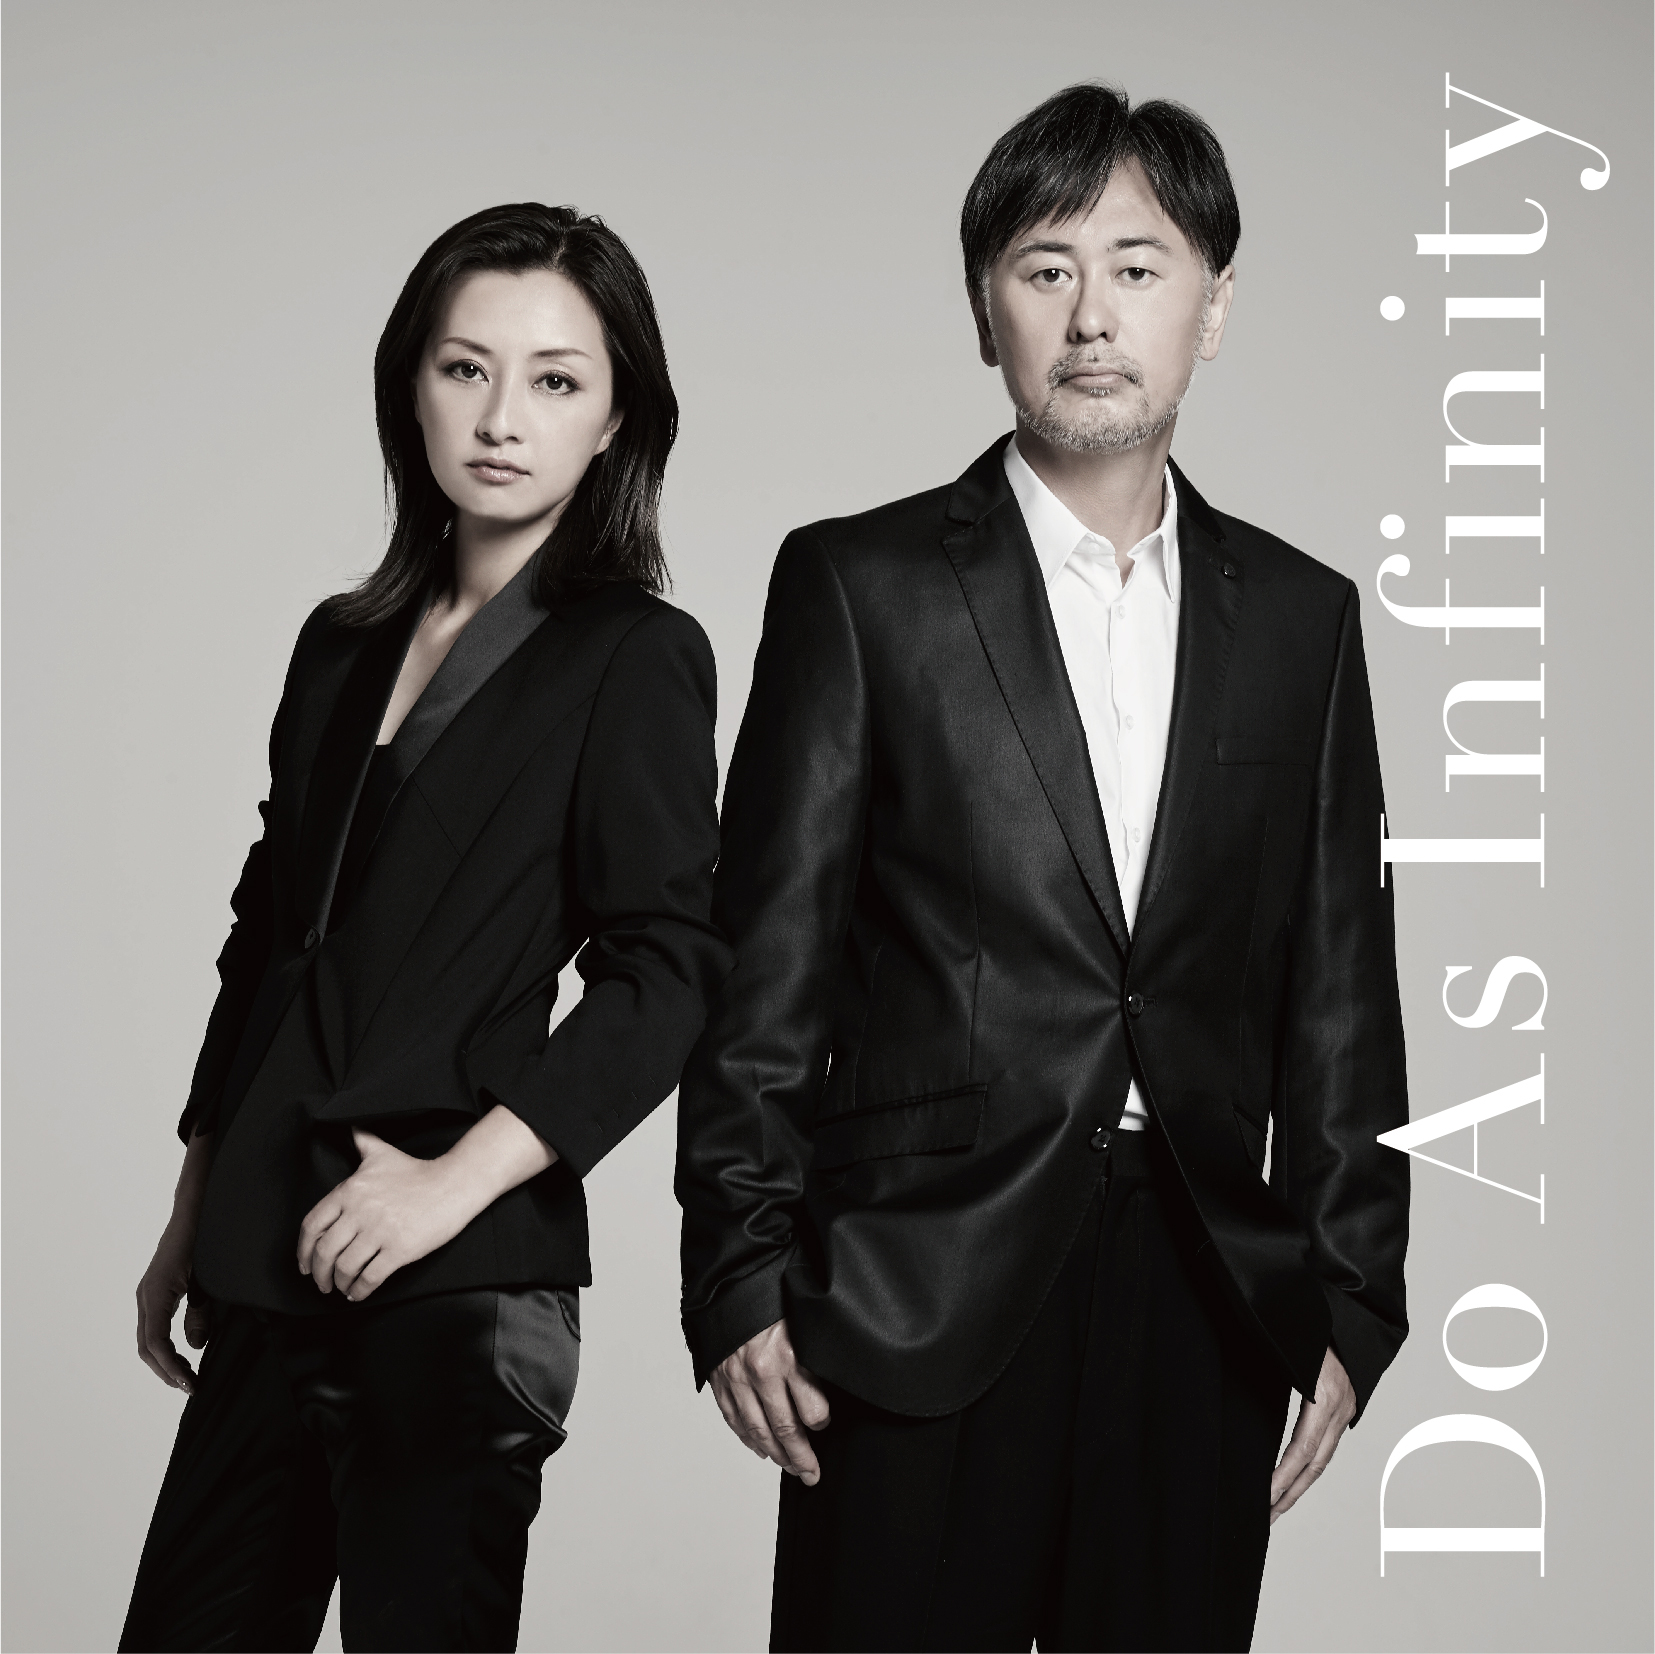 「Do As Infinity」CD Only